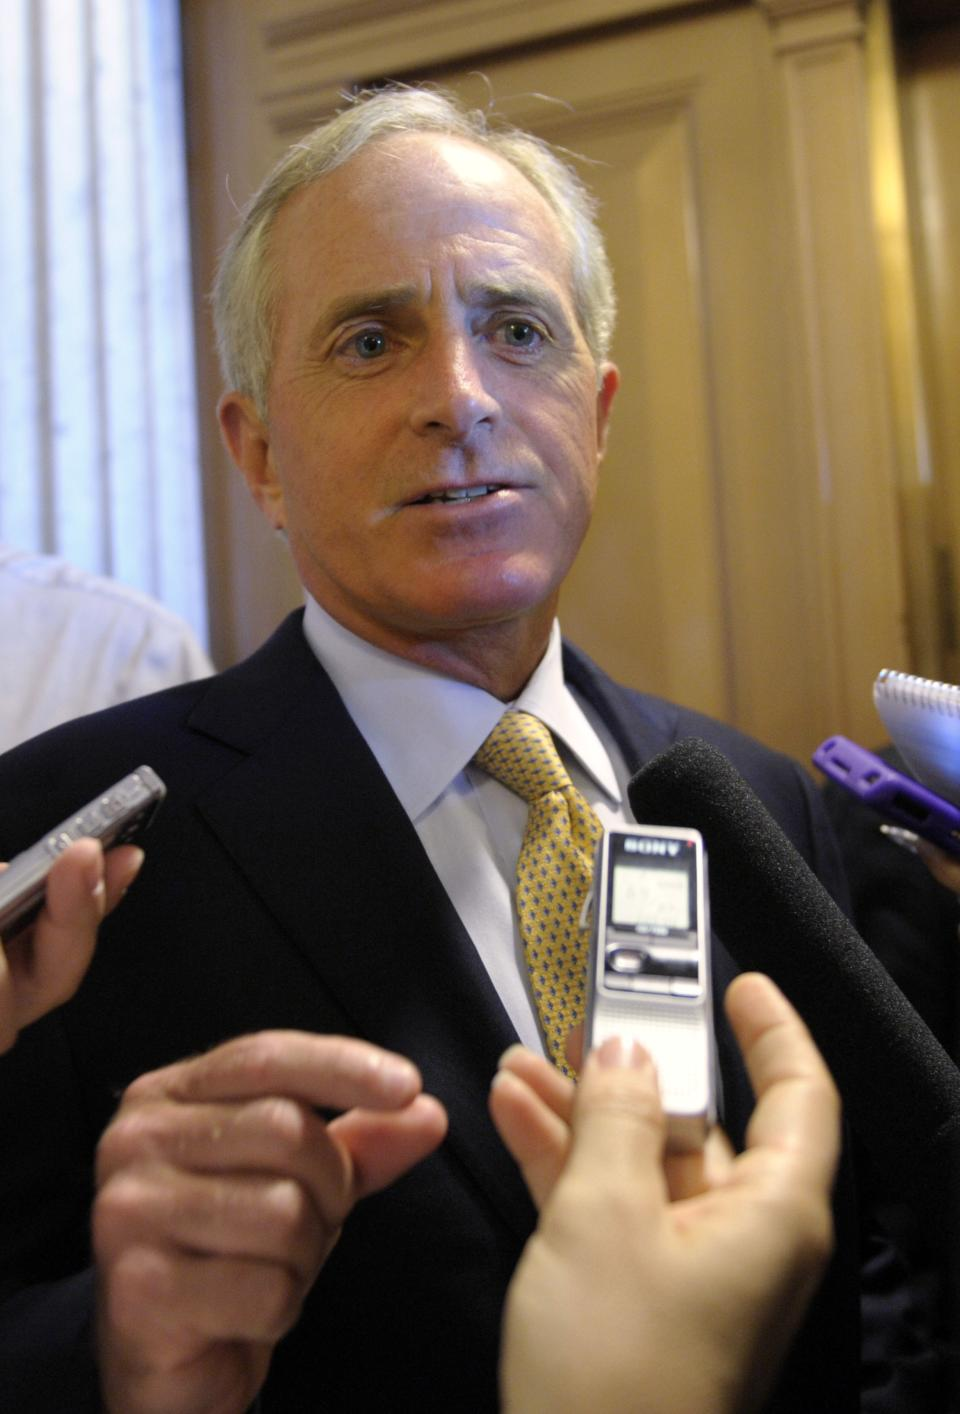 Sen. Bob Corker, R-Tenn., talks with reporters on Capitol Hill in Washington, Sunday, July 31, 2011, as the debt showdown continues. (AP Photo/Susan Walsh)